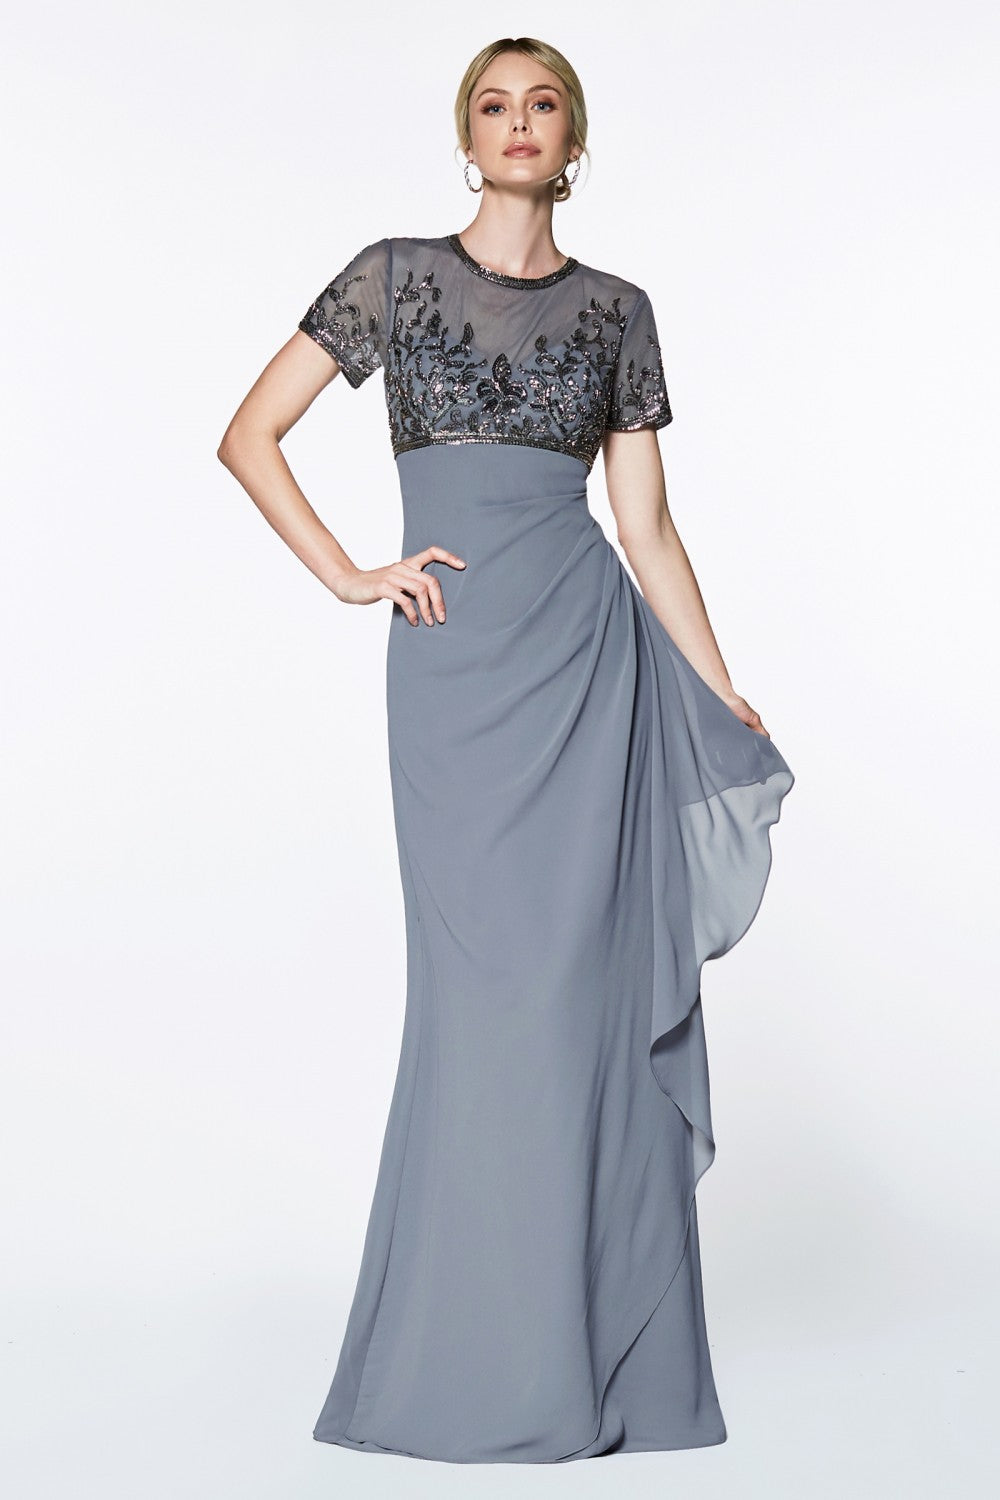 A-Line Wrap Dress With Short Sleeves And Embellished Empire Bodice